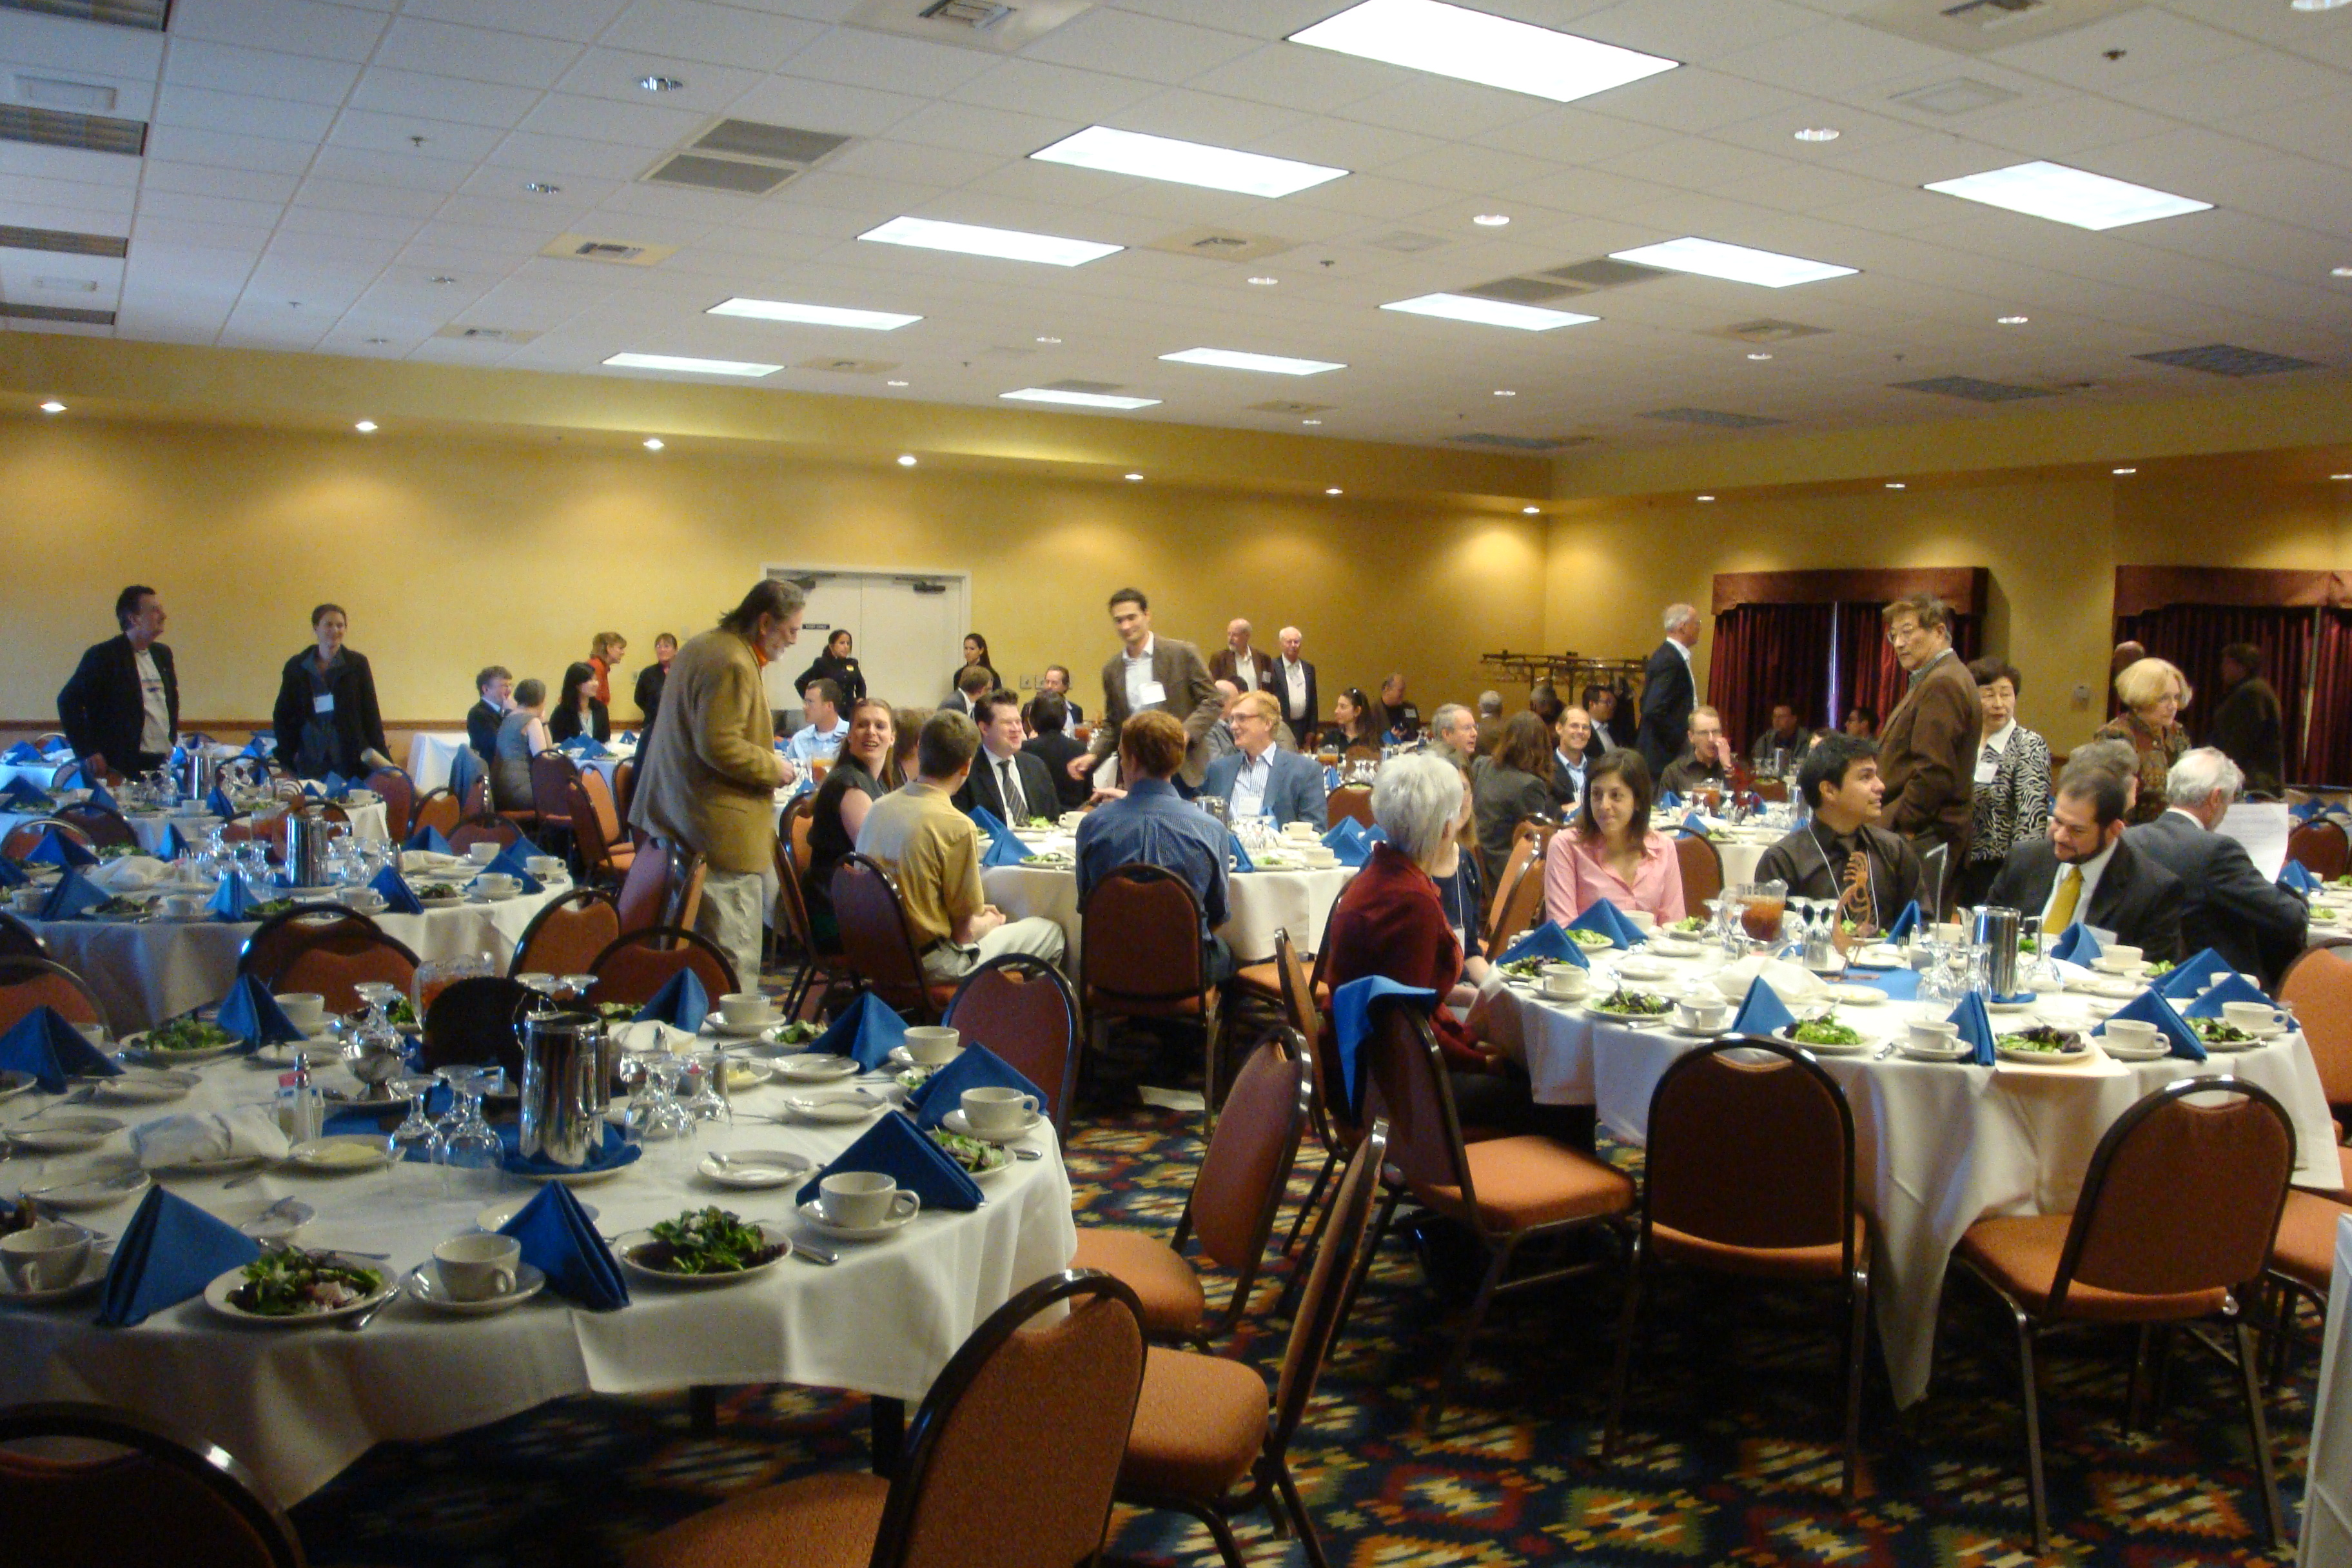 Participants arrive for Annual Banquet Luncheon